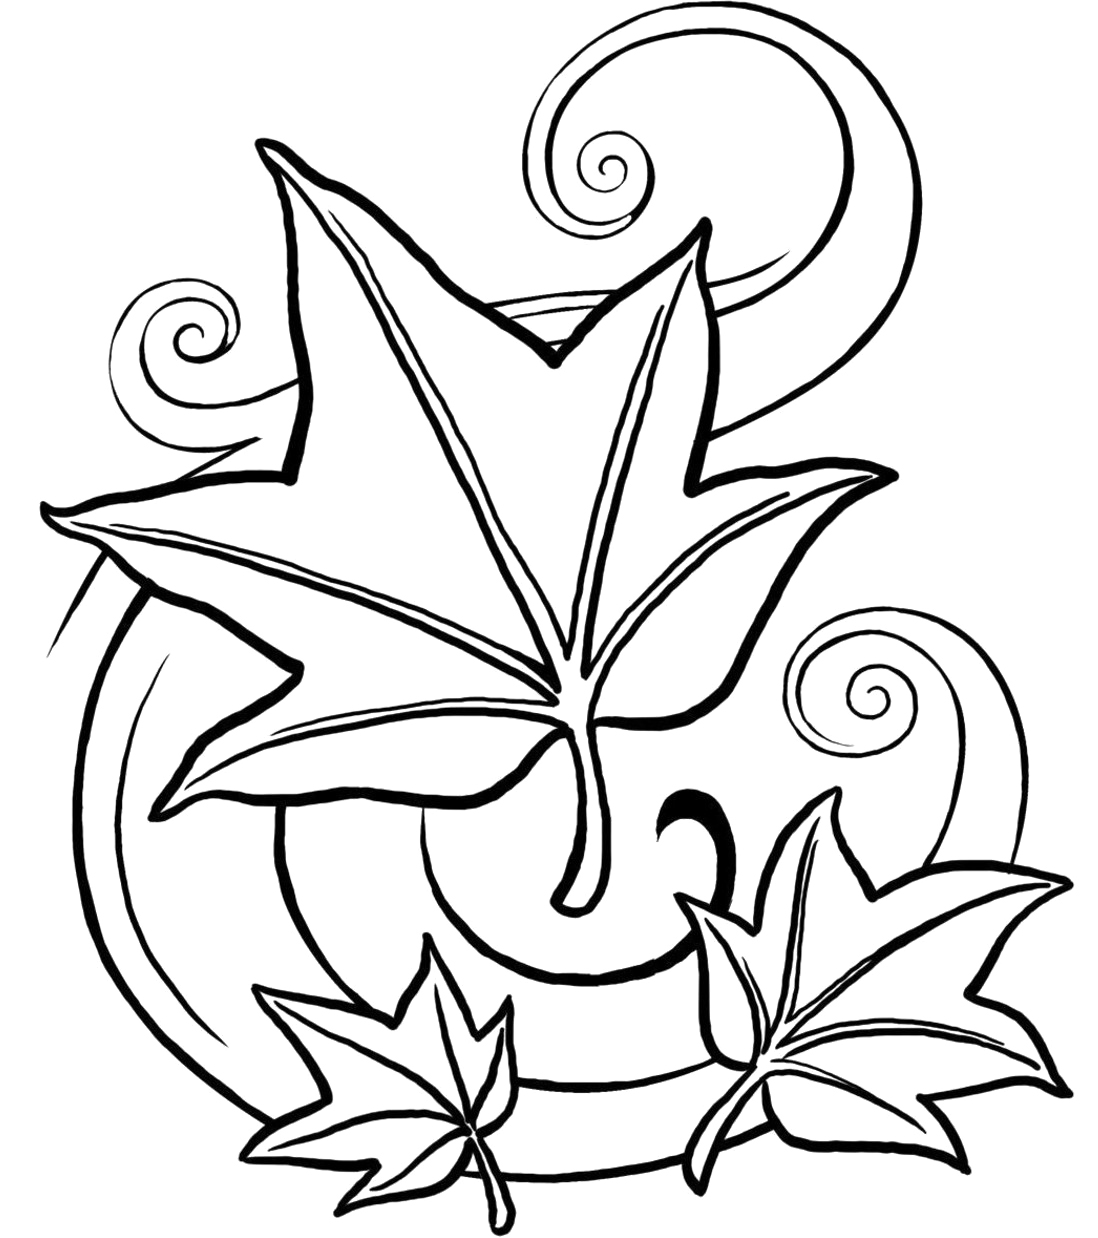 Coloring Pages Of Fall Leaves Fall Leaf Coloring Pages For